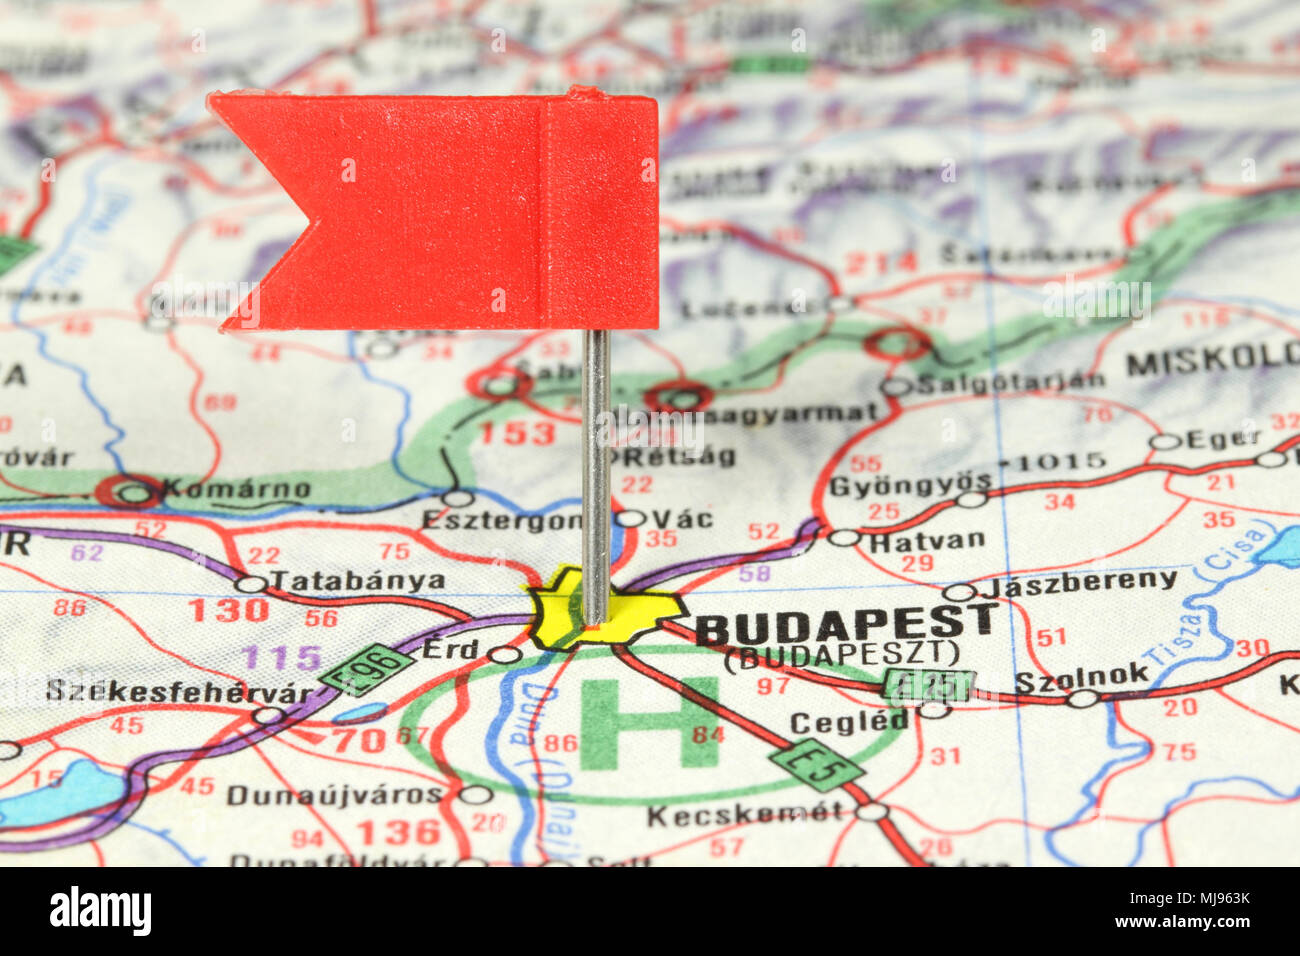 Budapest - famous city in Hungary. Red flag pin on an old map ...